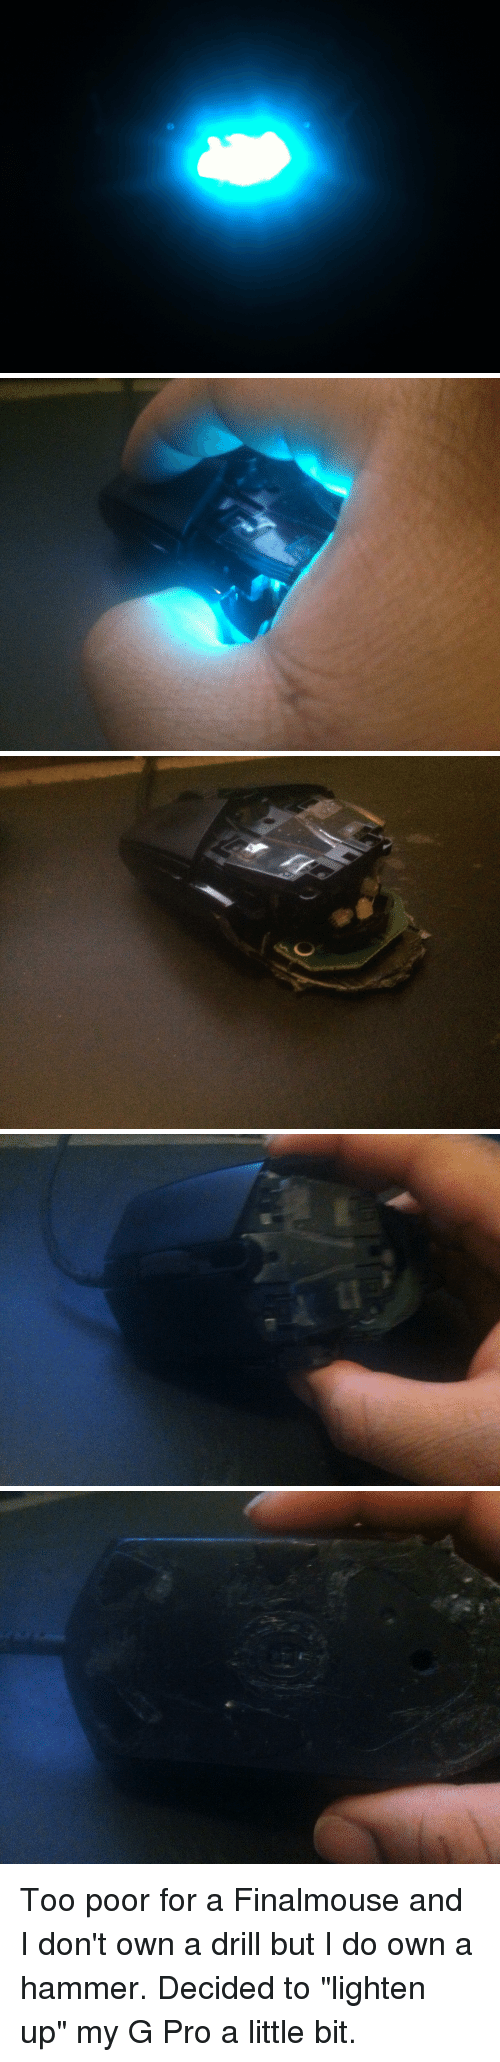 Too Poor for a Finalmouse and I Don't Own a Drill but I Do